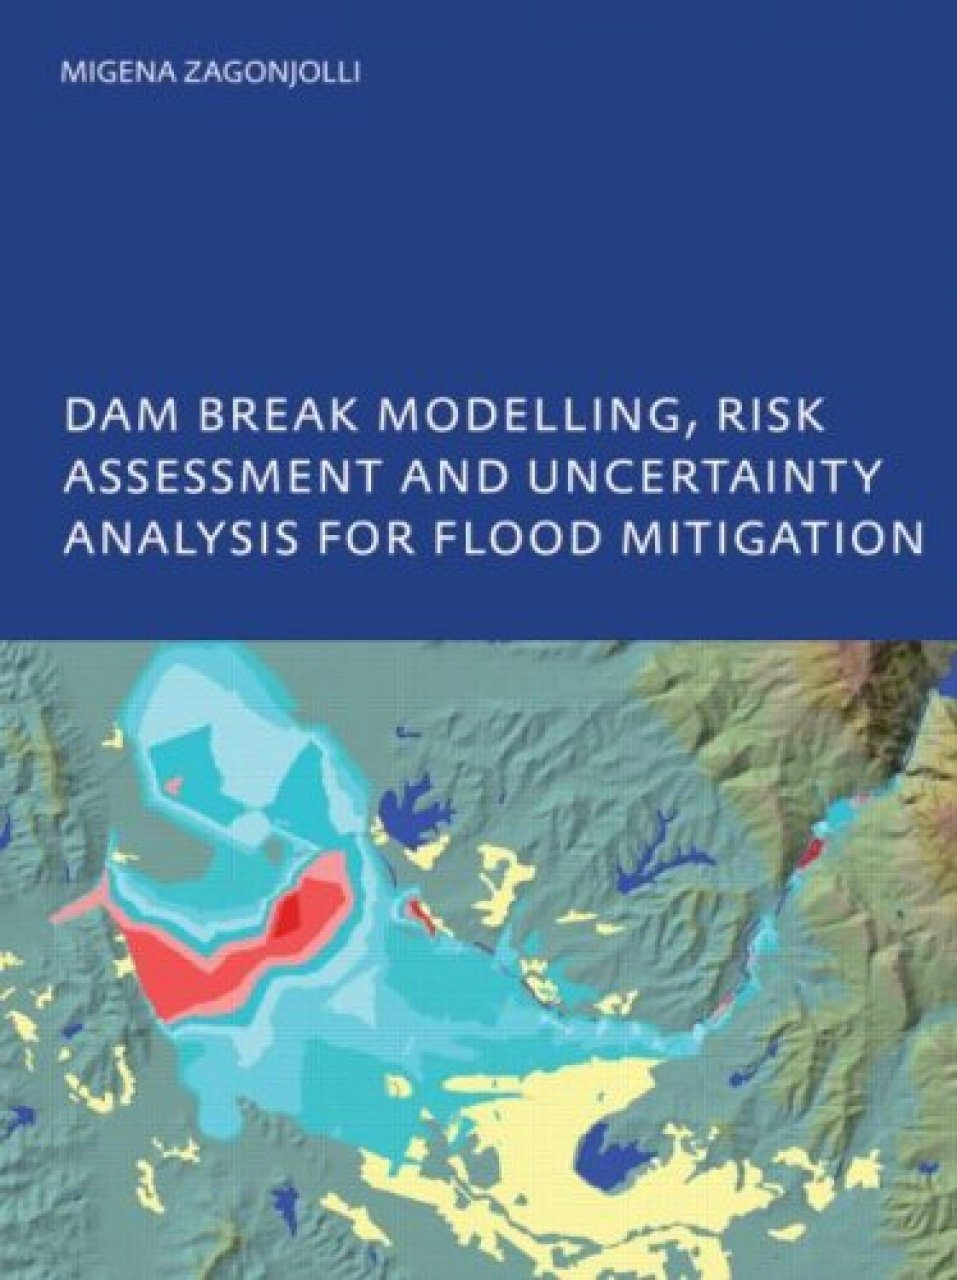 Uncertainty Analysis and Risk Assessment in Dam Break Modelling